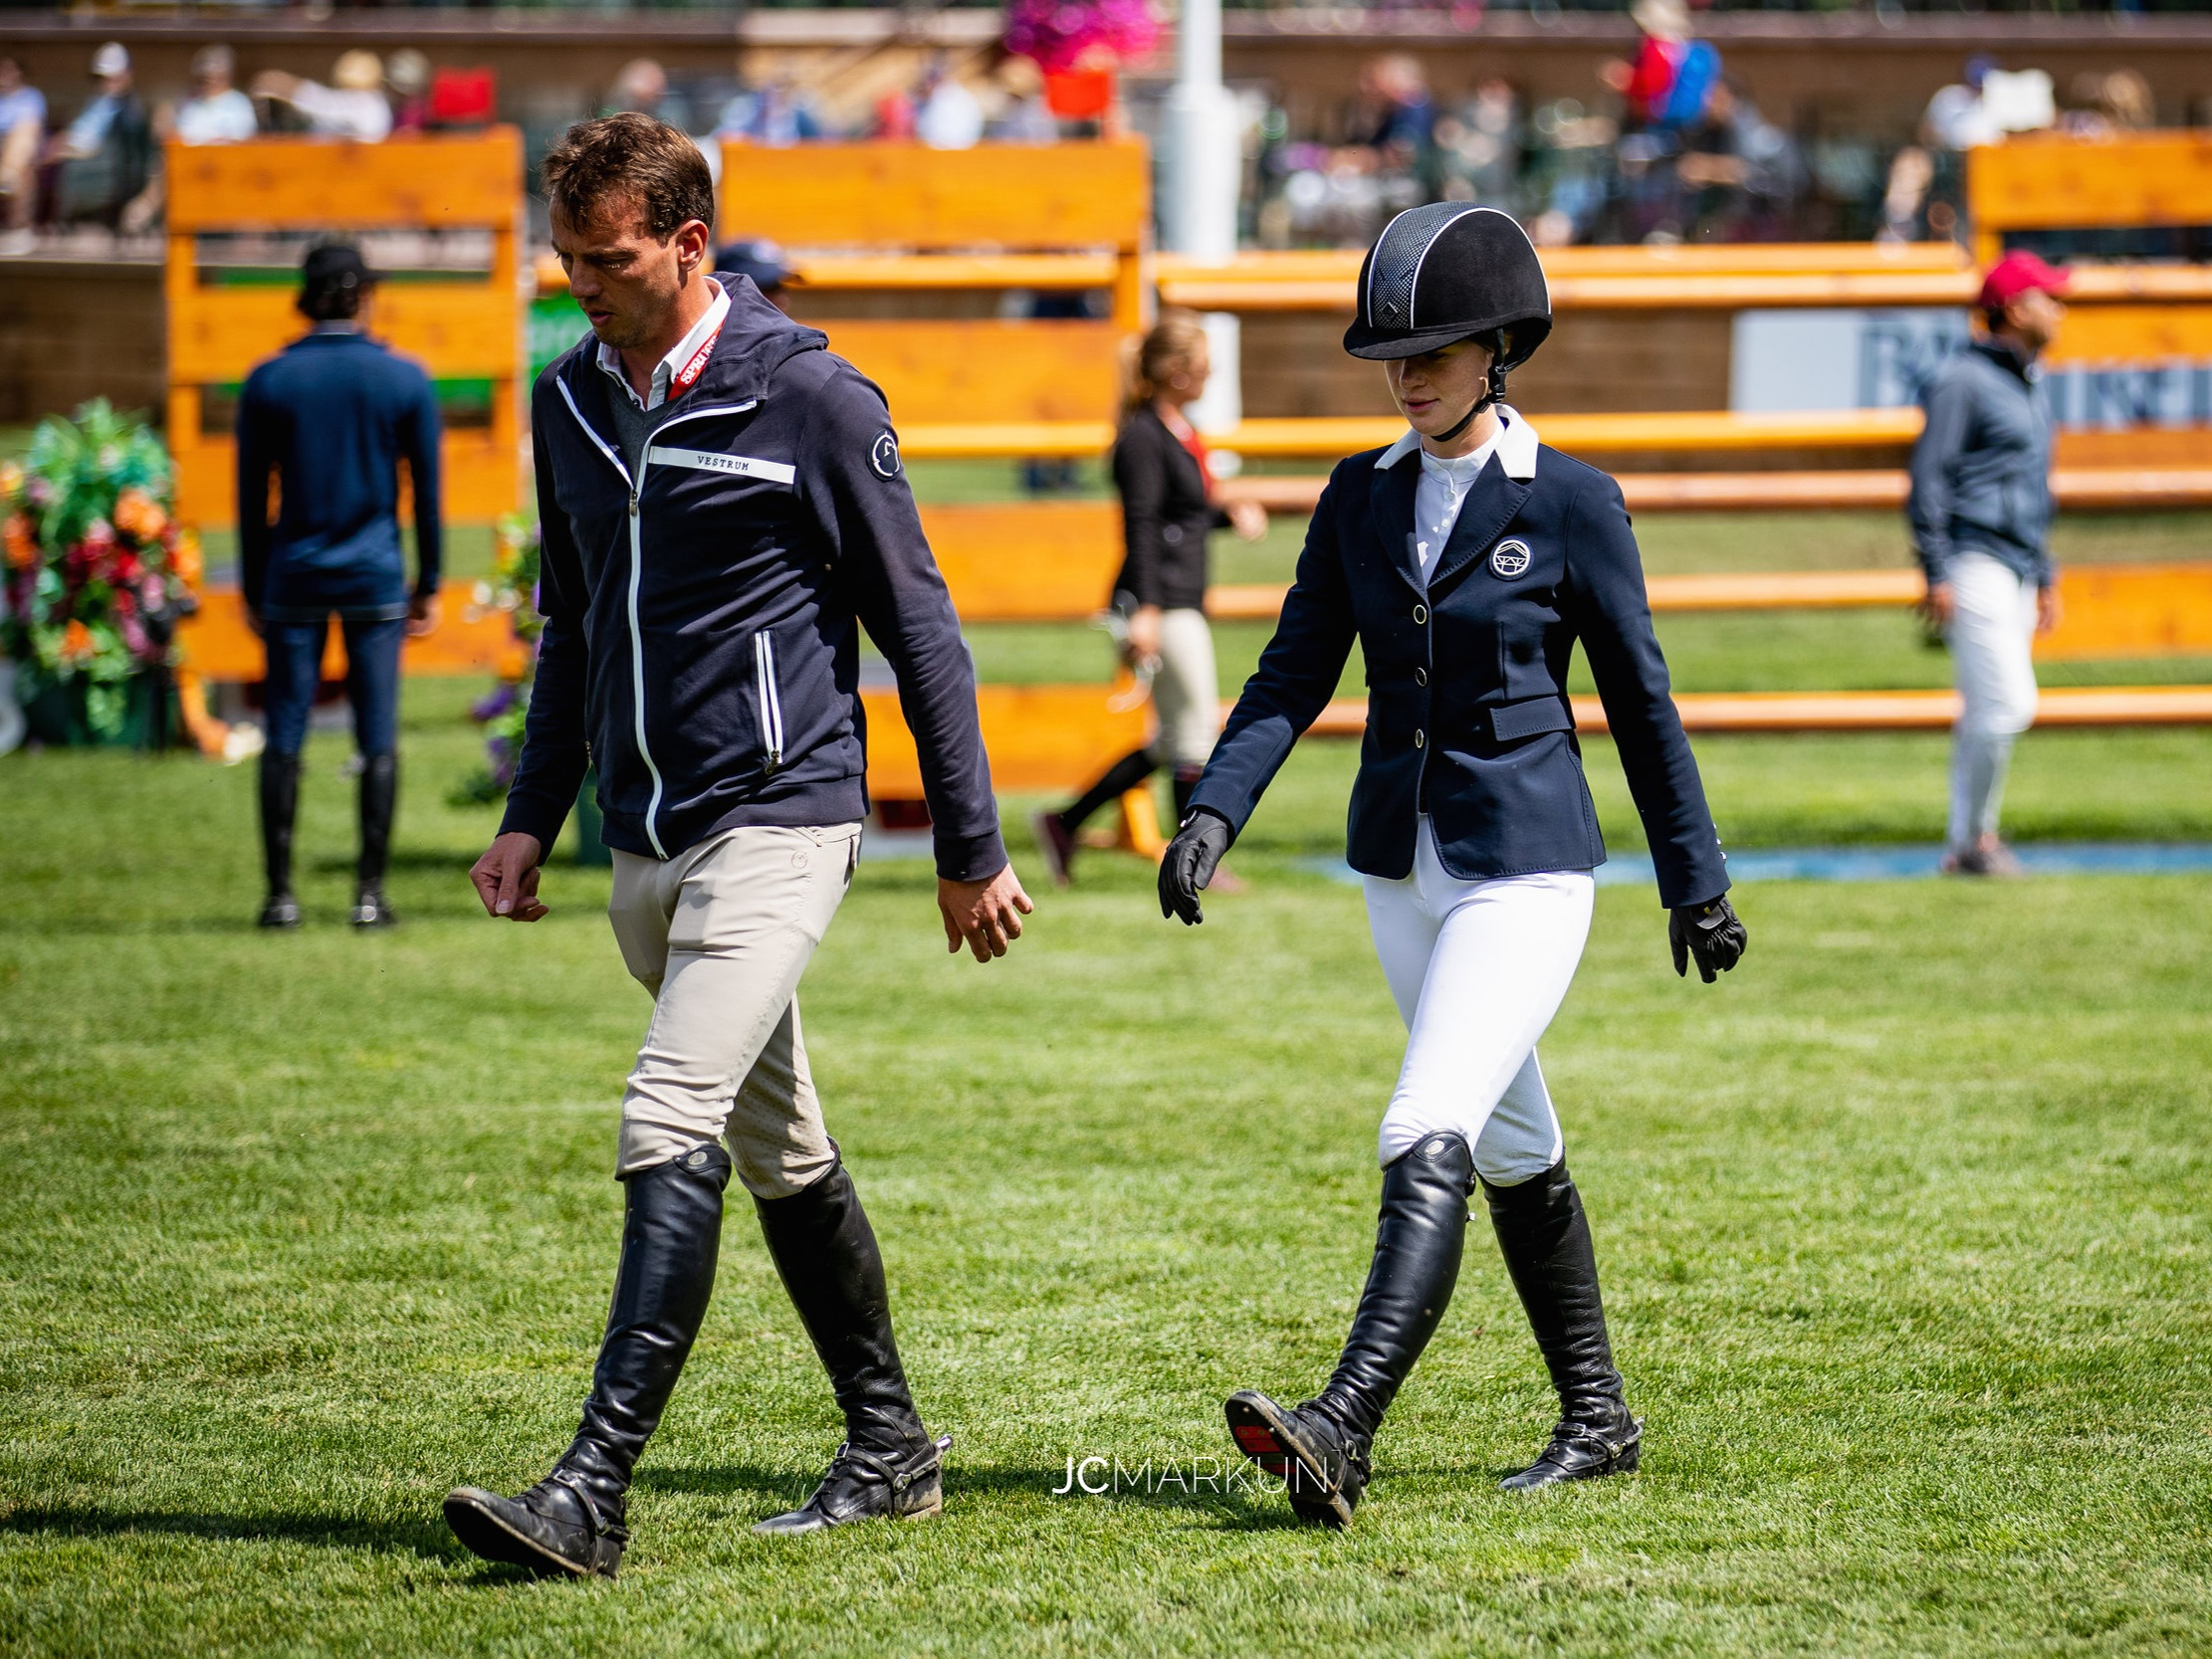 Jenn Gates and Harrie Smolders at Spruce Meadows CSI 5* by Rolex 2019. Photo by JC Markun.